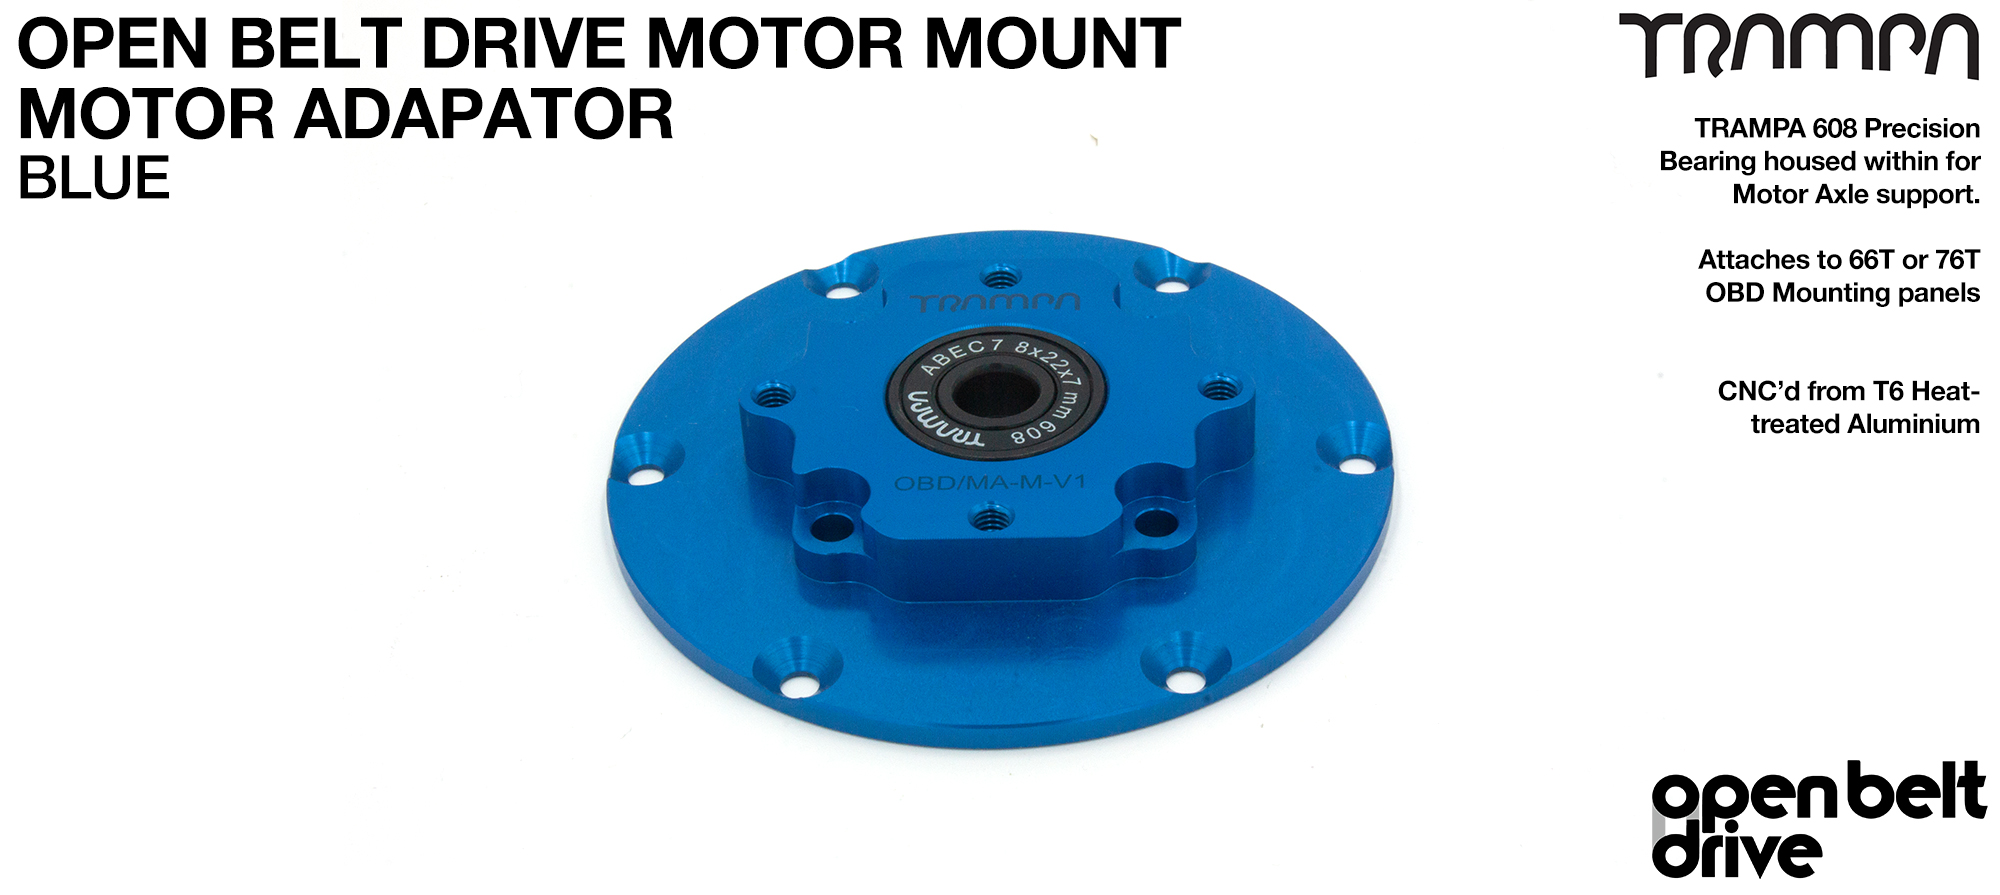 OBD Motor Adaptor with Housed Bearing - BLUE